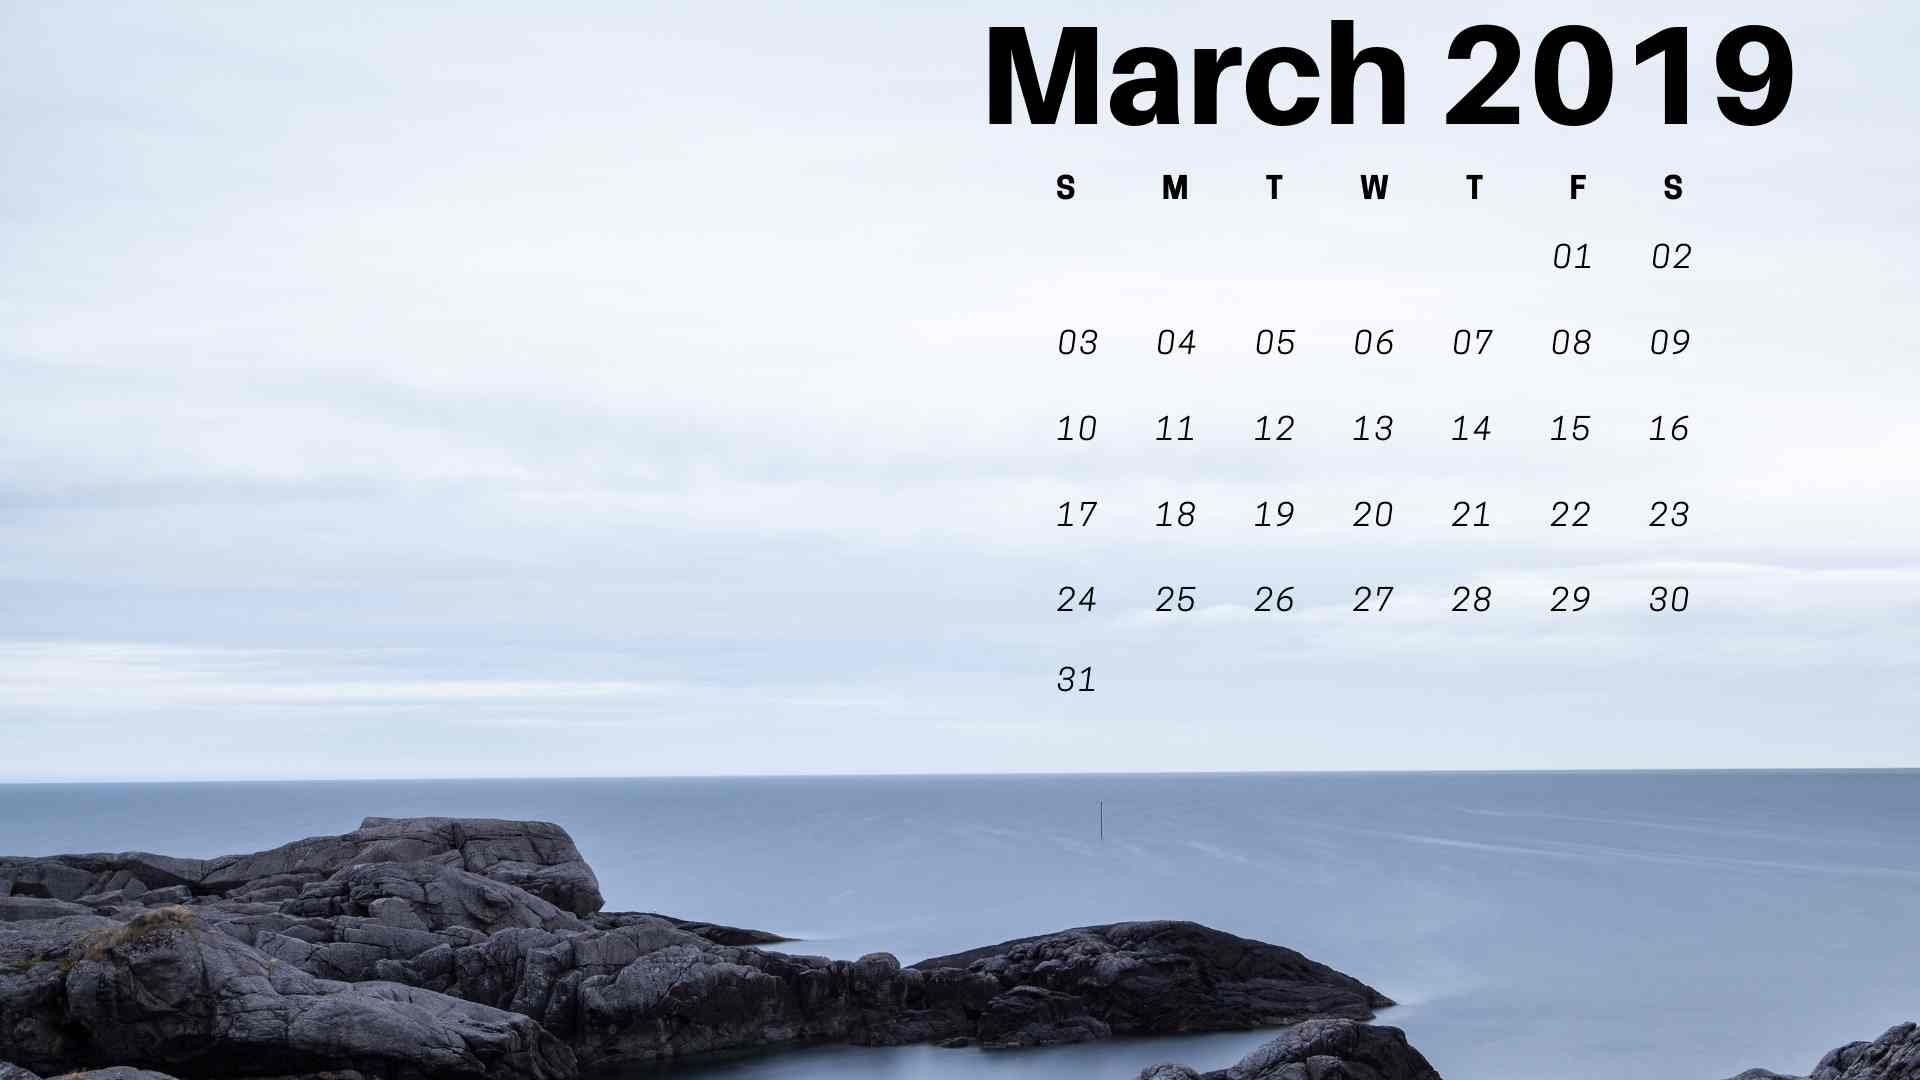 March 2019 Calendar Landscape Más Actual March 2019 Calendar Wallpaper Desktop March Calendar Calenda2019 Of March 2019 Calendar Landscape Más Arriba-a-fecha Travel with the Lakeland Chamber the israel Adventure May 24